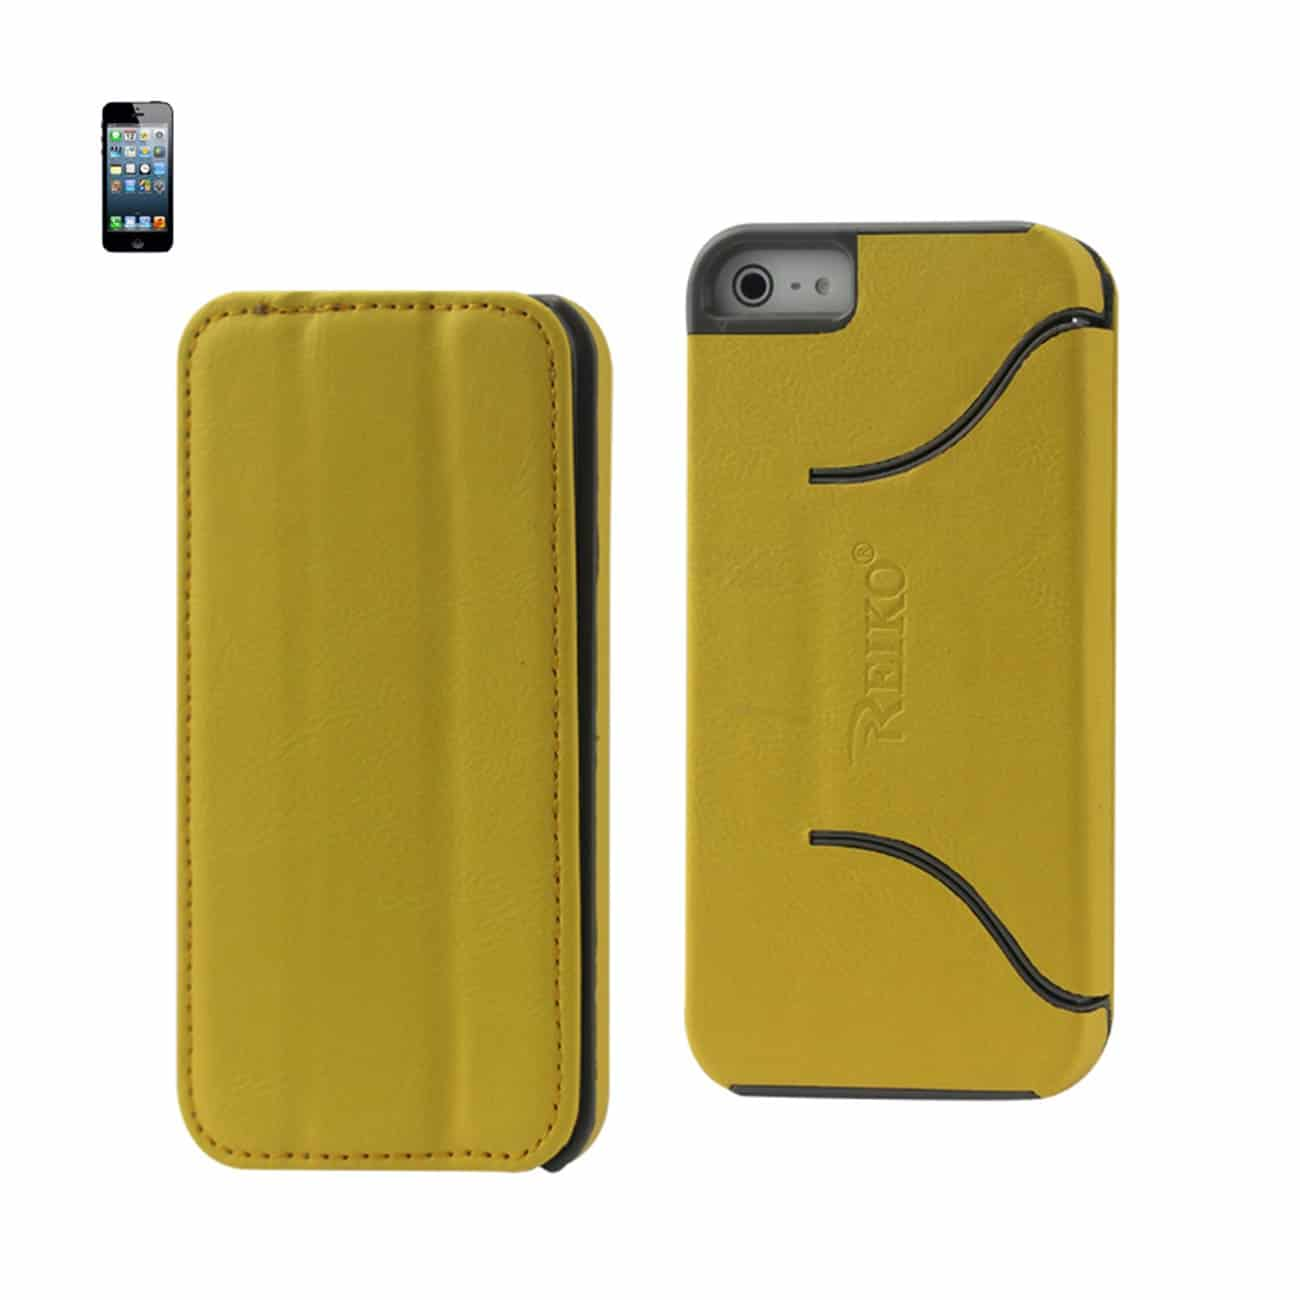 IPHONE 5/5S/SE FLIP FOLIO CASE WITH STAND IN YELLOW